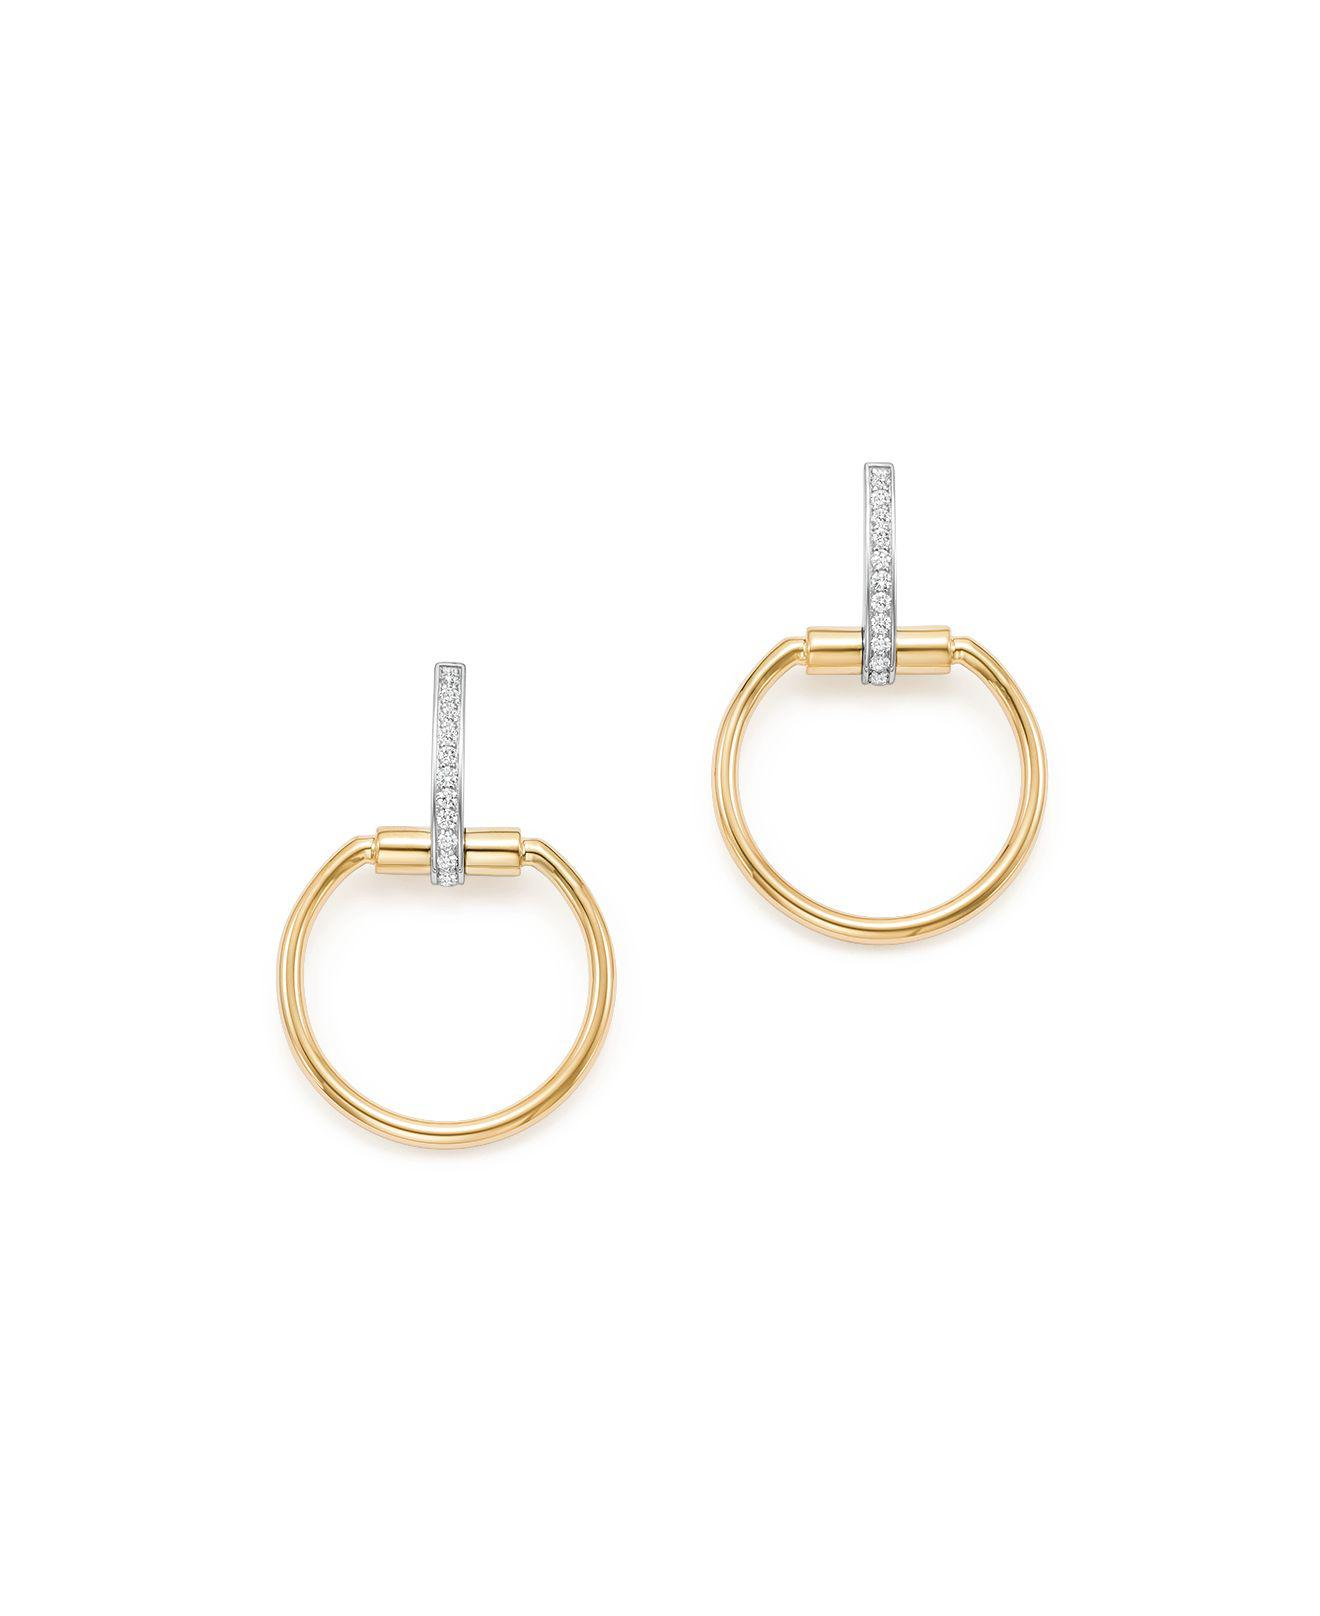 from sale round silver gold jewelry ouro brincos earrings wedding hoop fashion small hot item women trendy in for